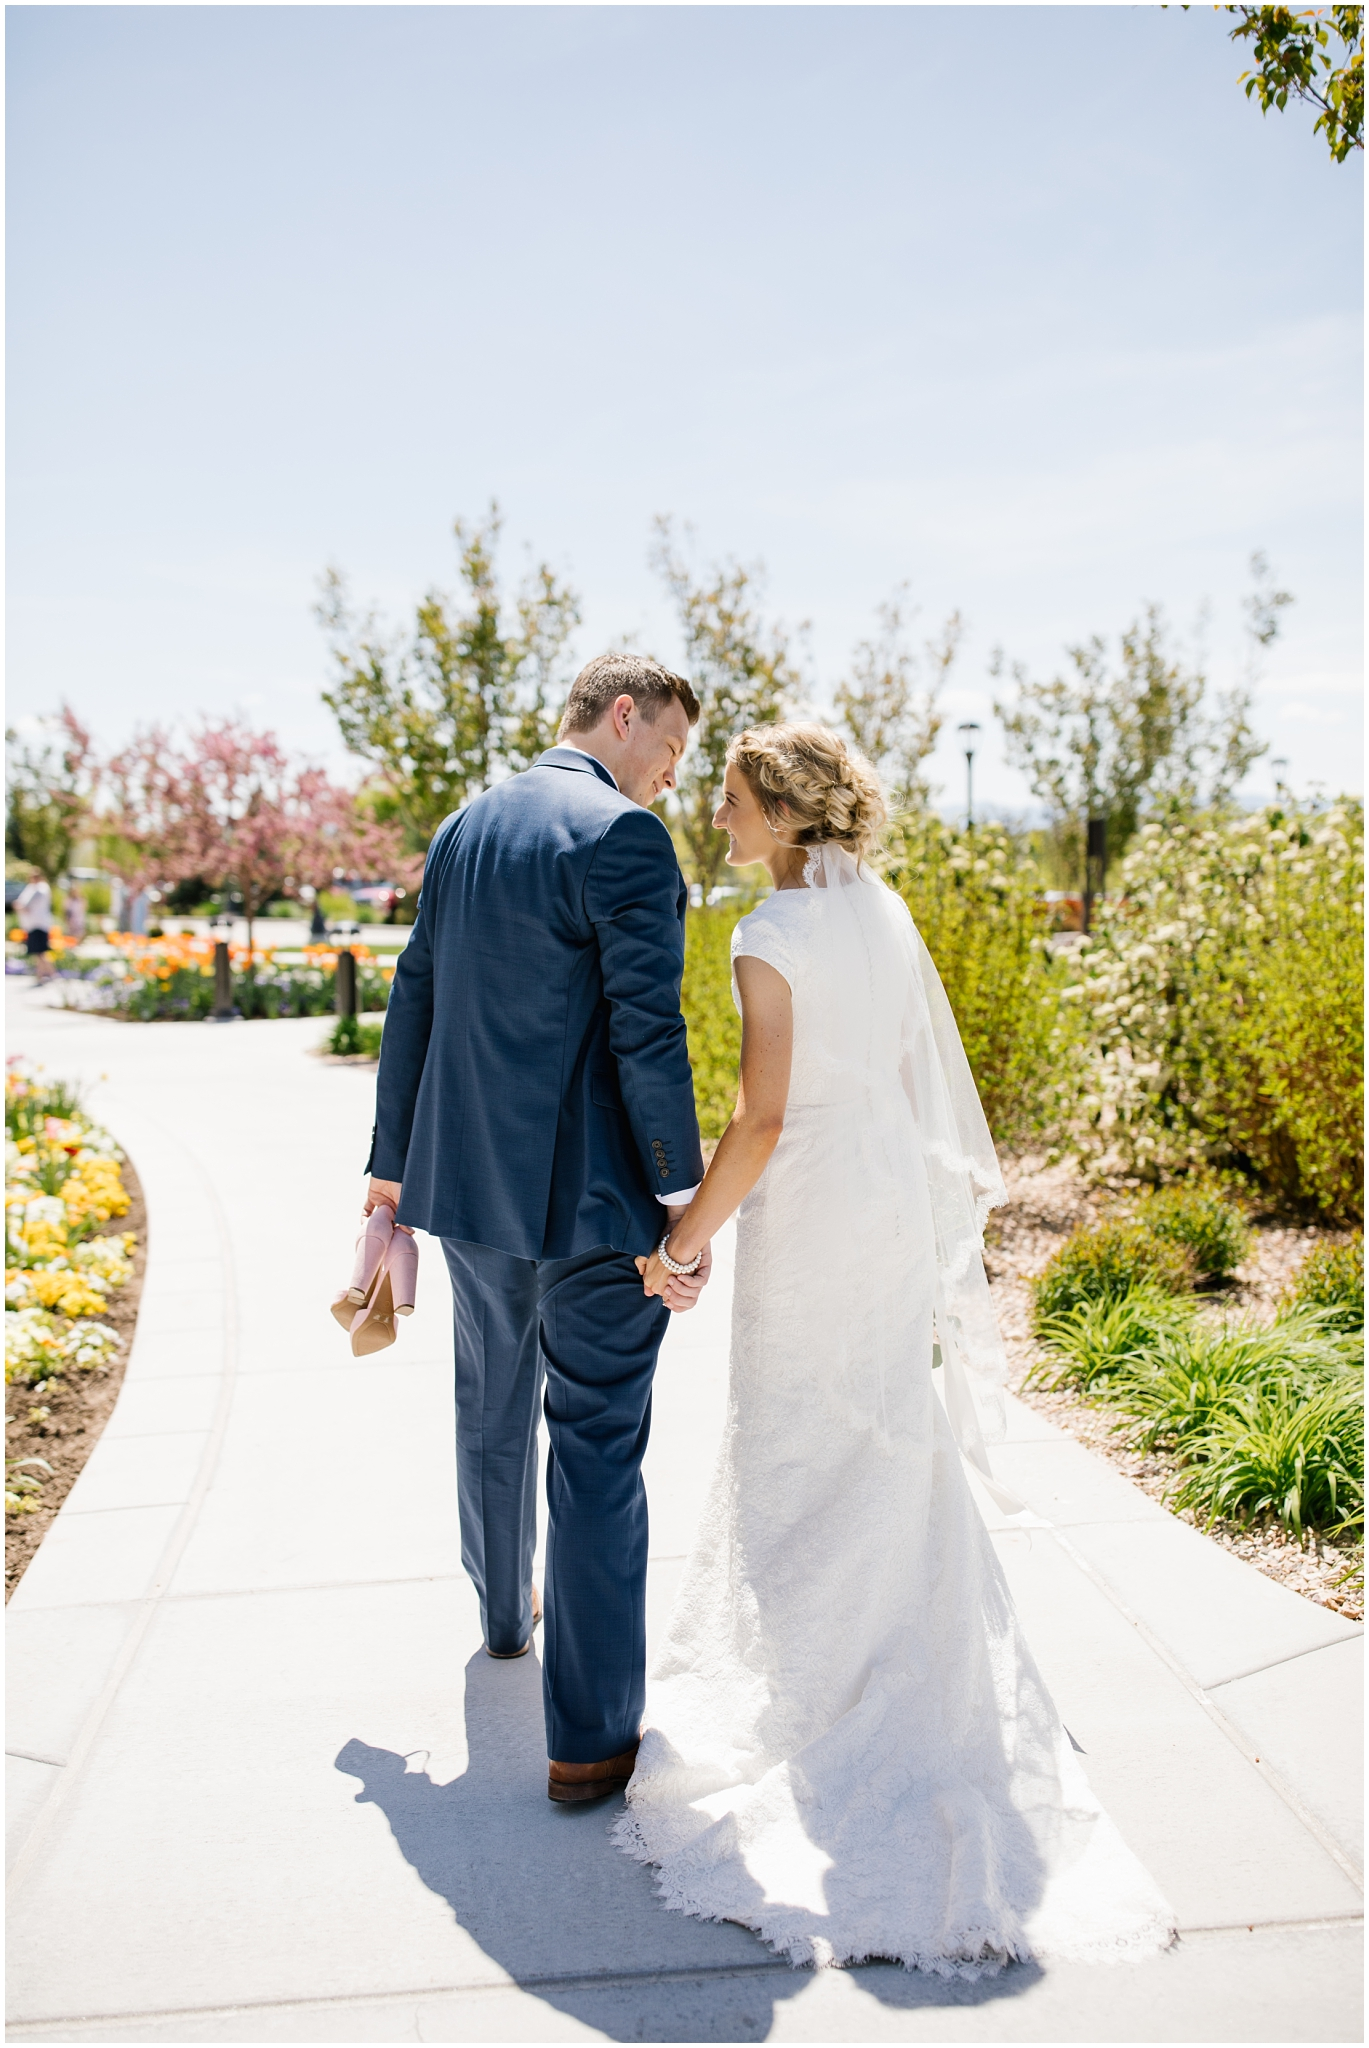 TA-Wedding-167_Lizzie-B-Imagery-Utah-Wedding-Photographer-Park-City-Salt-Lake-City-Thanksgiving-Point-Ashton-Gardens-Lehi-Utah.jpg